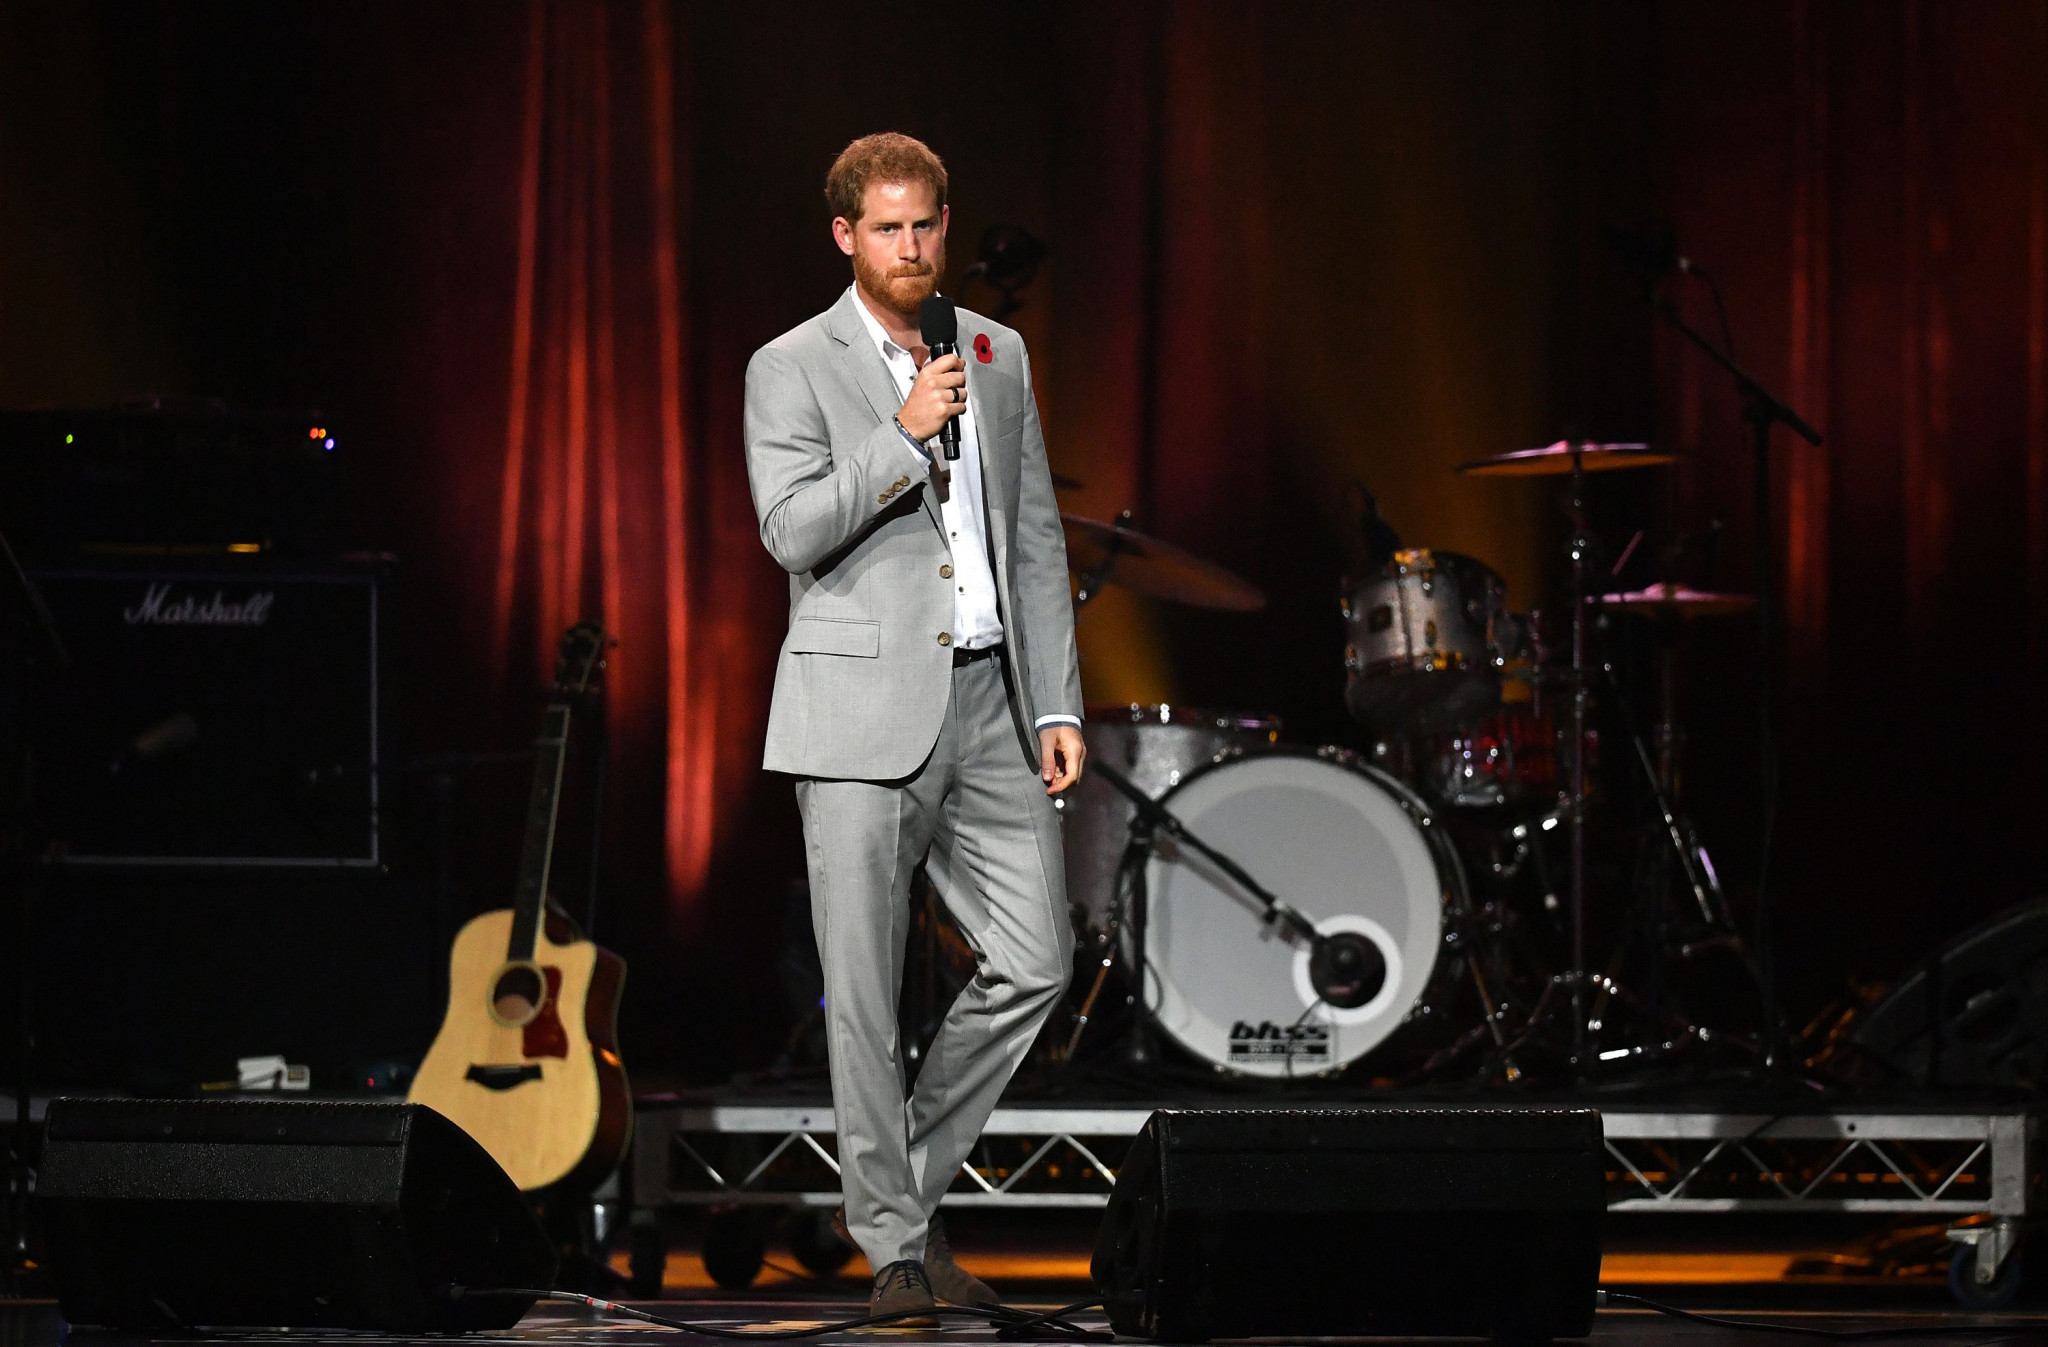 Prince Harry, the founder of the Invictus Games, gave a speech at the event's Closing Ceremony ©Getty Images